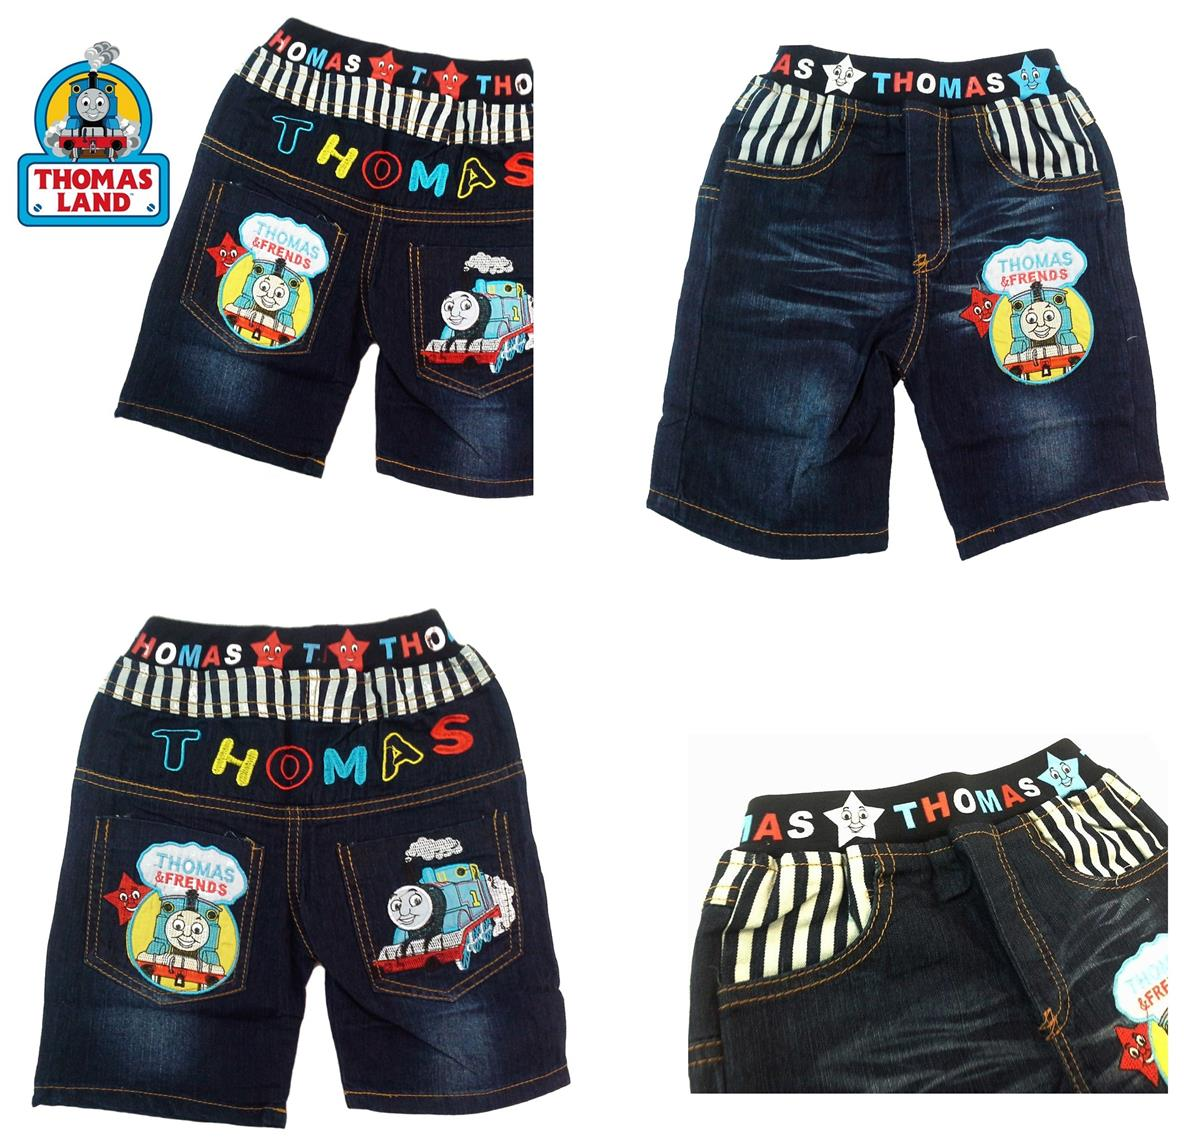 Sale Thomas And Friends Short Pant End 9 24 2016 6 49 Pm